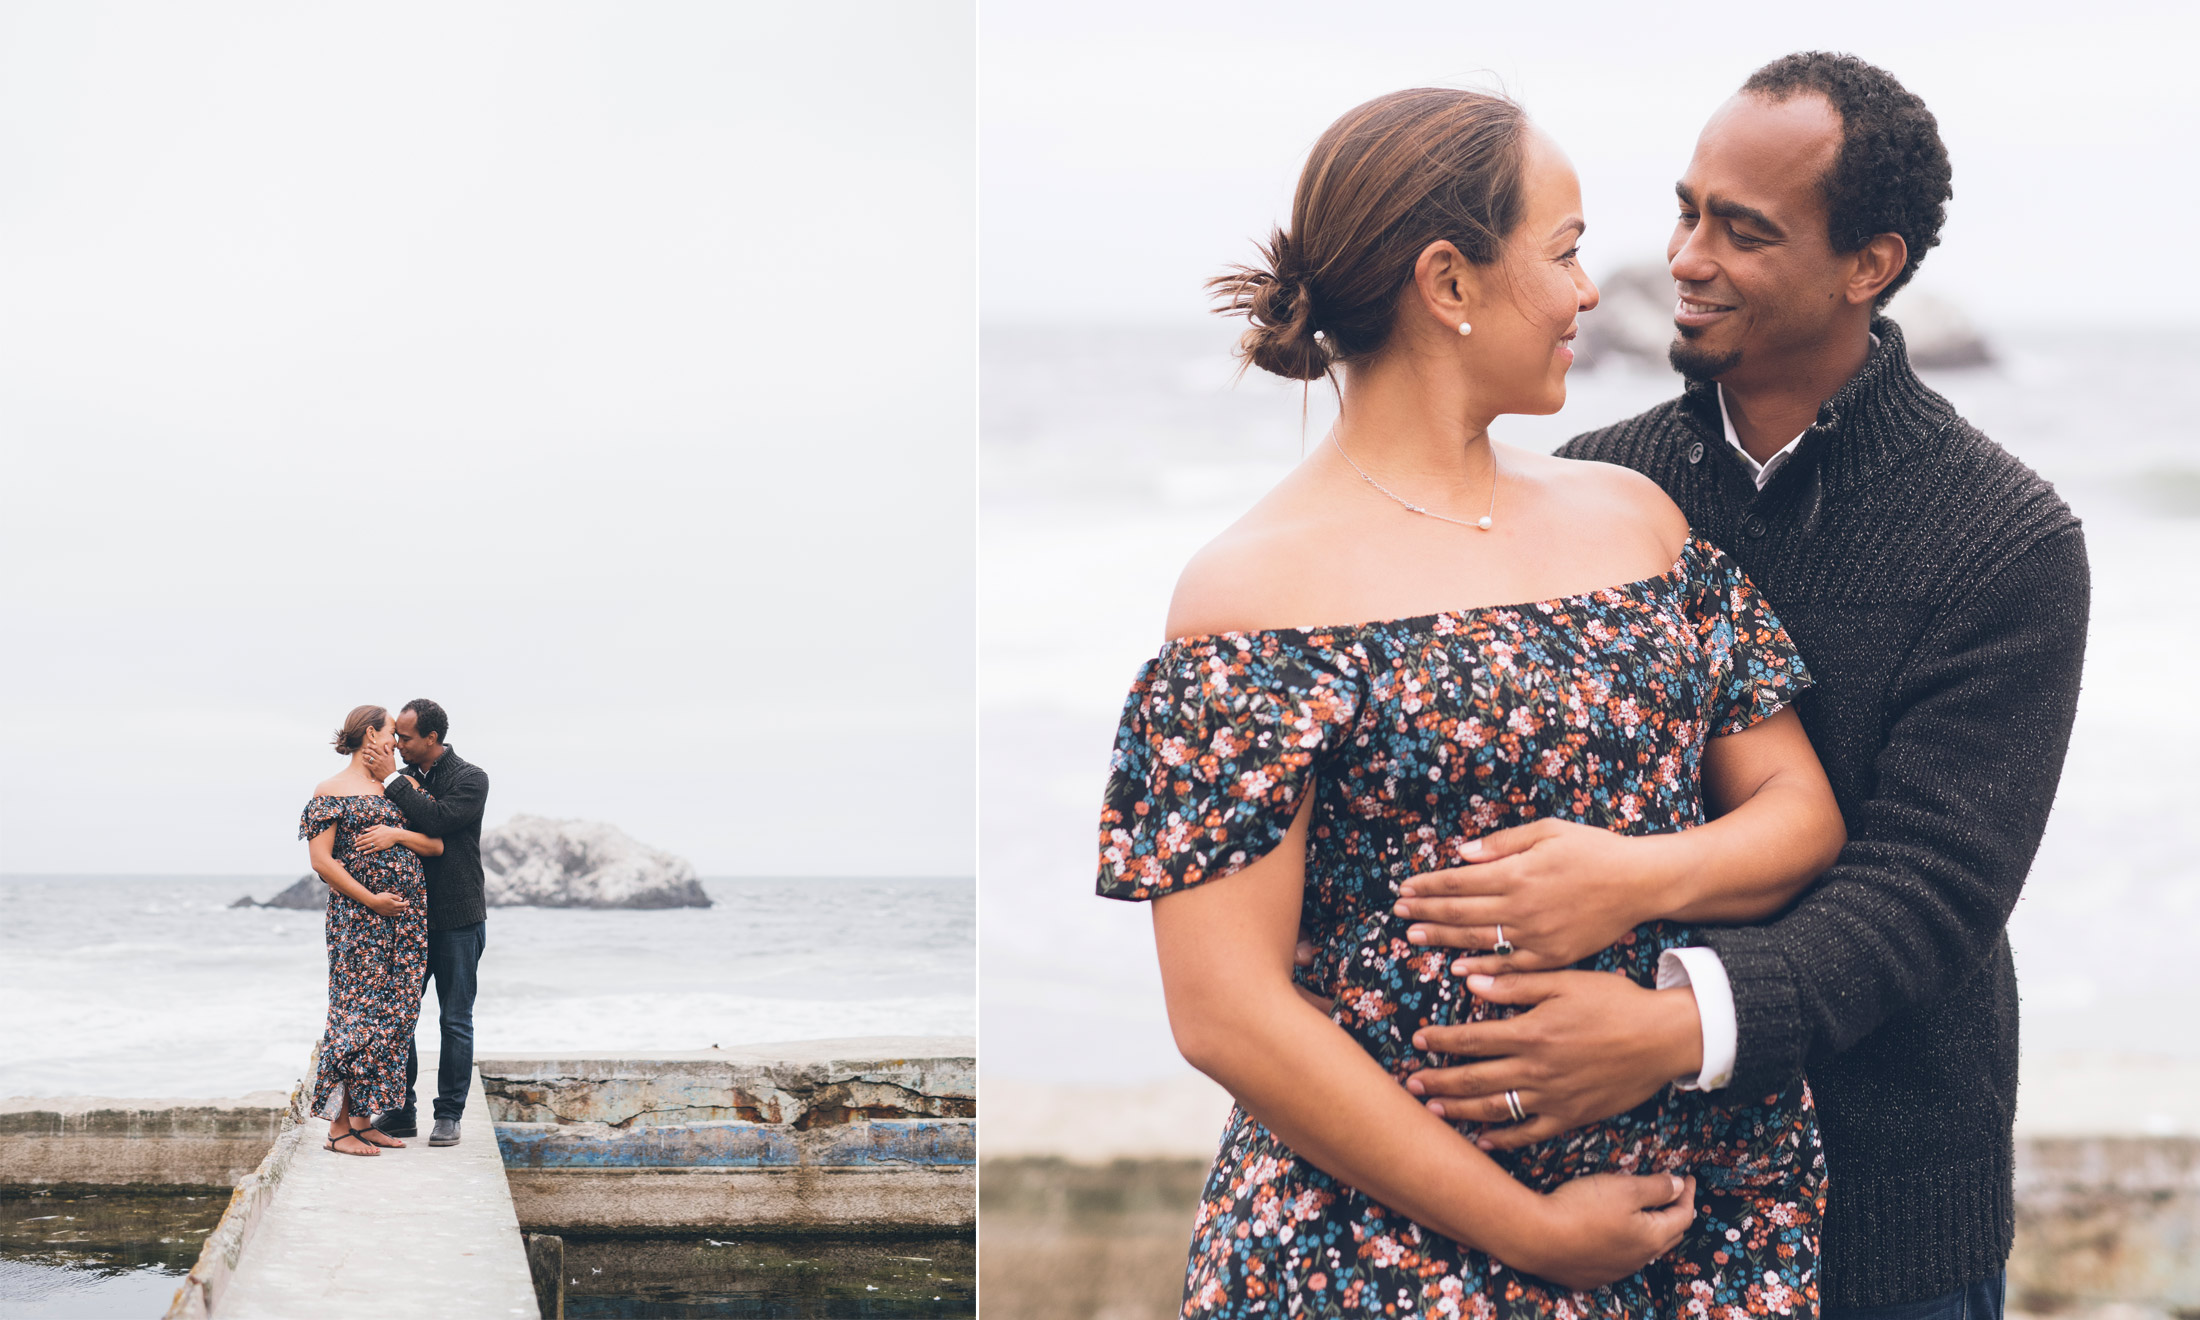 sutro-baths-maternity-photography.jpg